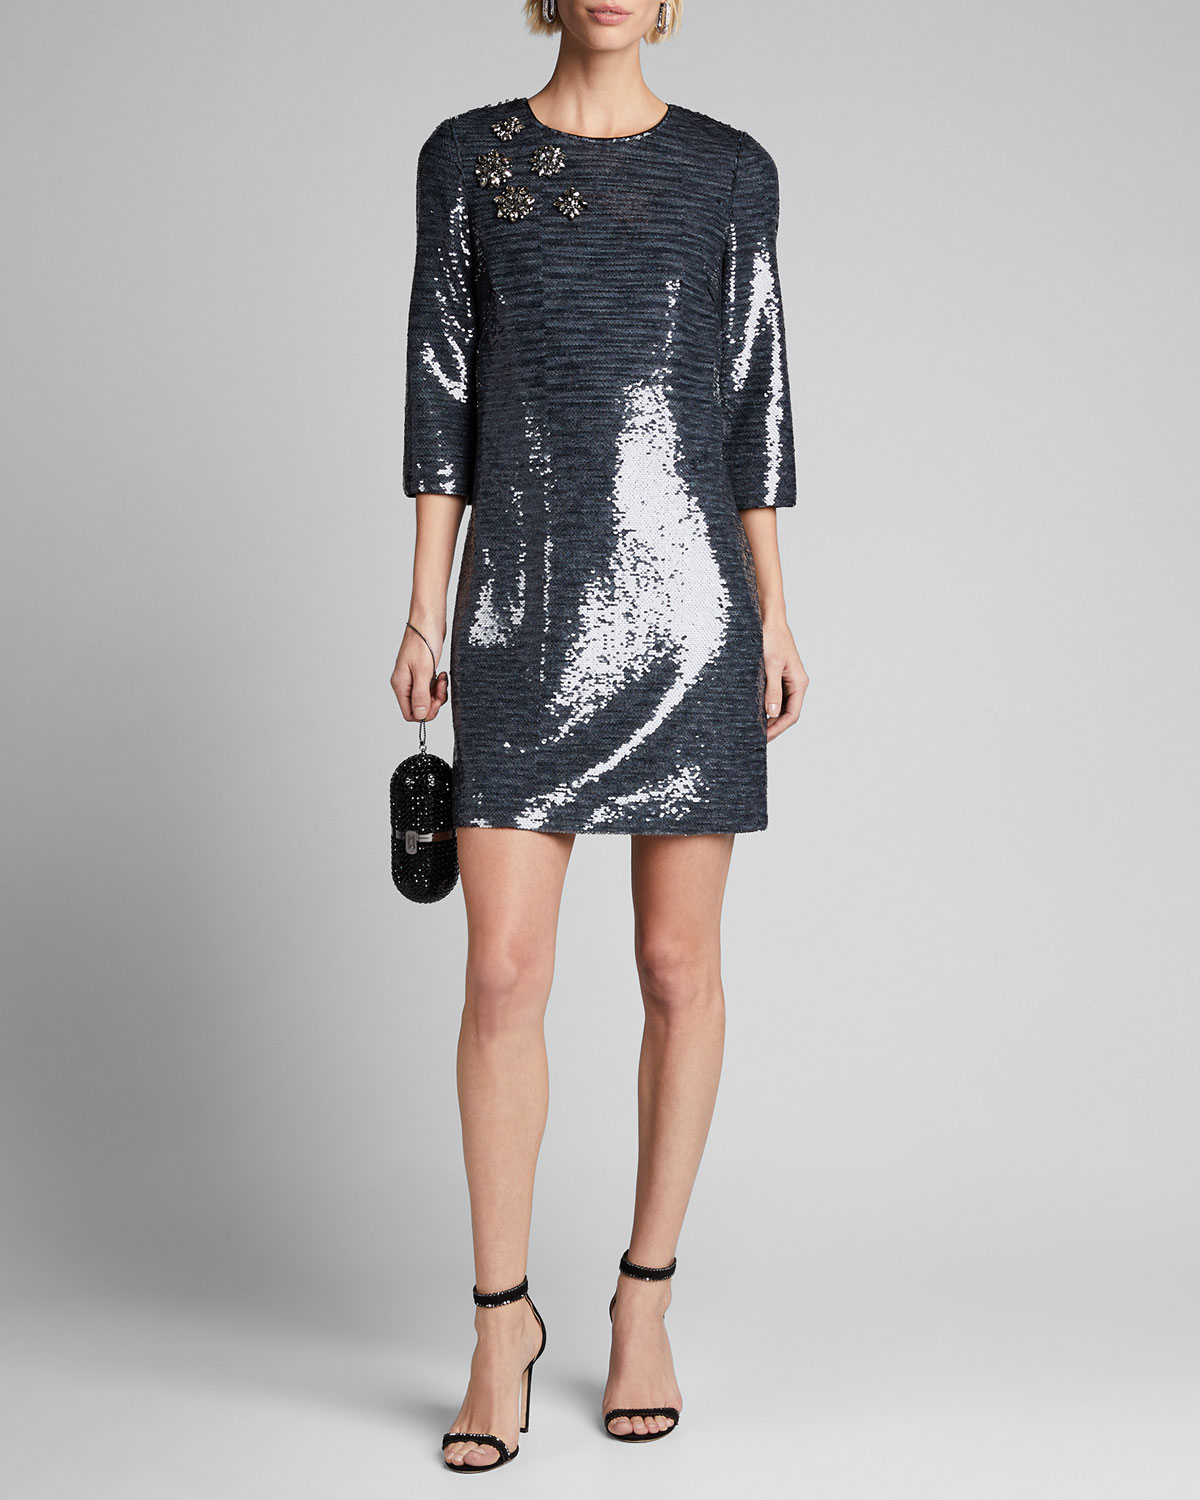 Badgley Mischka Dresses SEQUIN SACK ELBOW-SLEEVE MINI DRESS W/ BROACHES